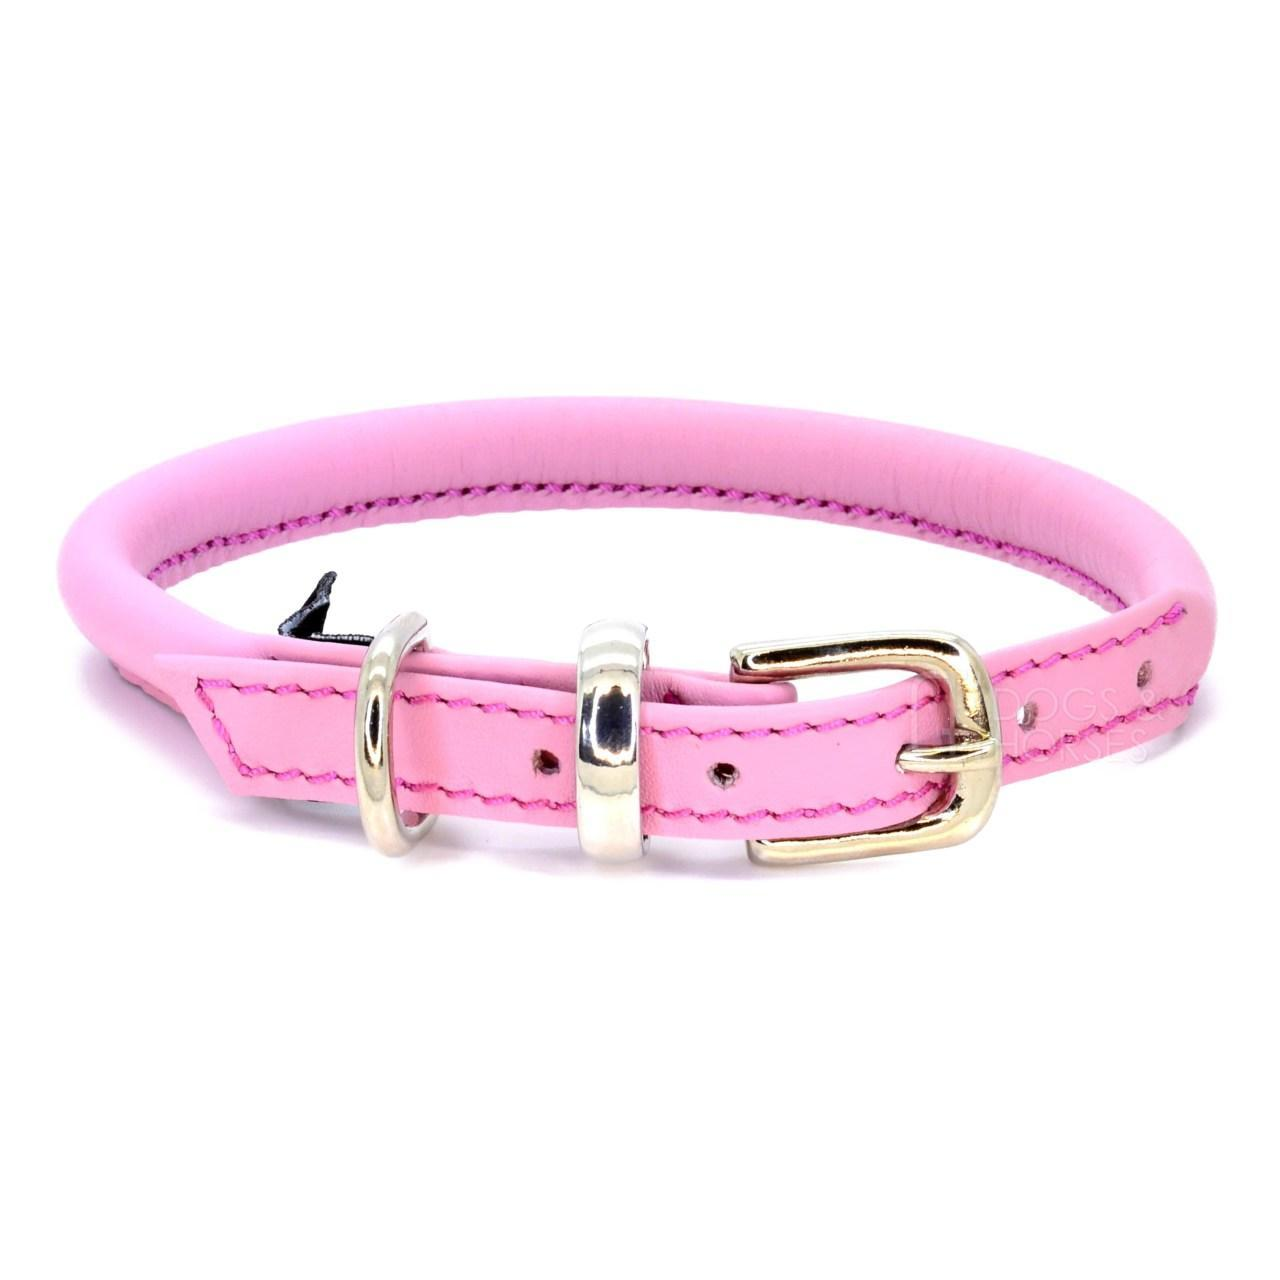 Fetch Pink Rolled Leather Dog Collar